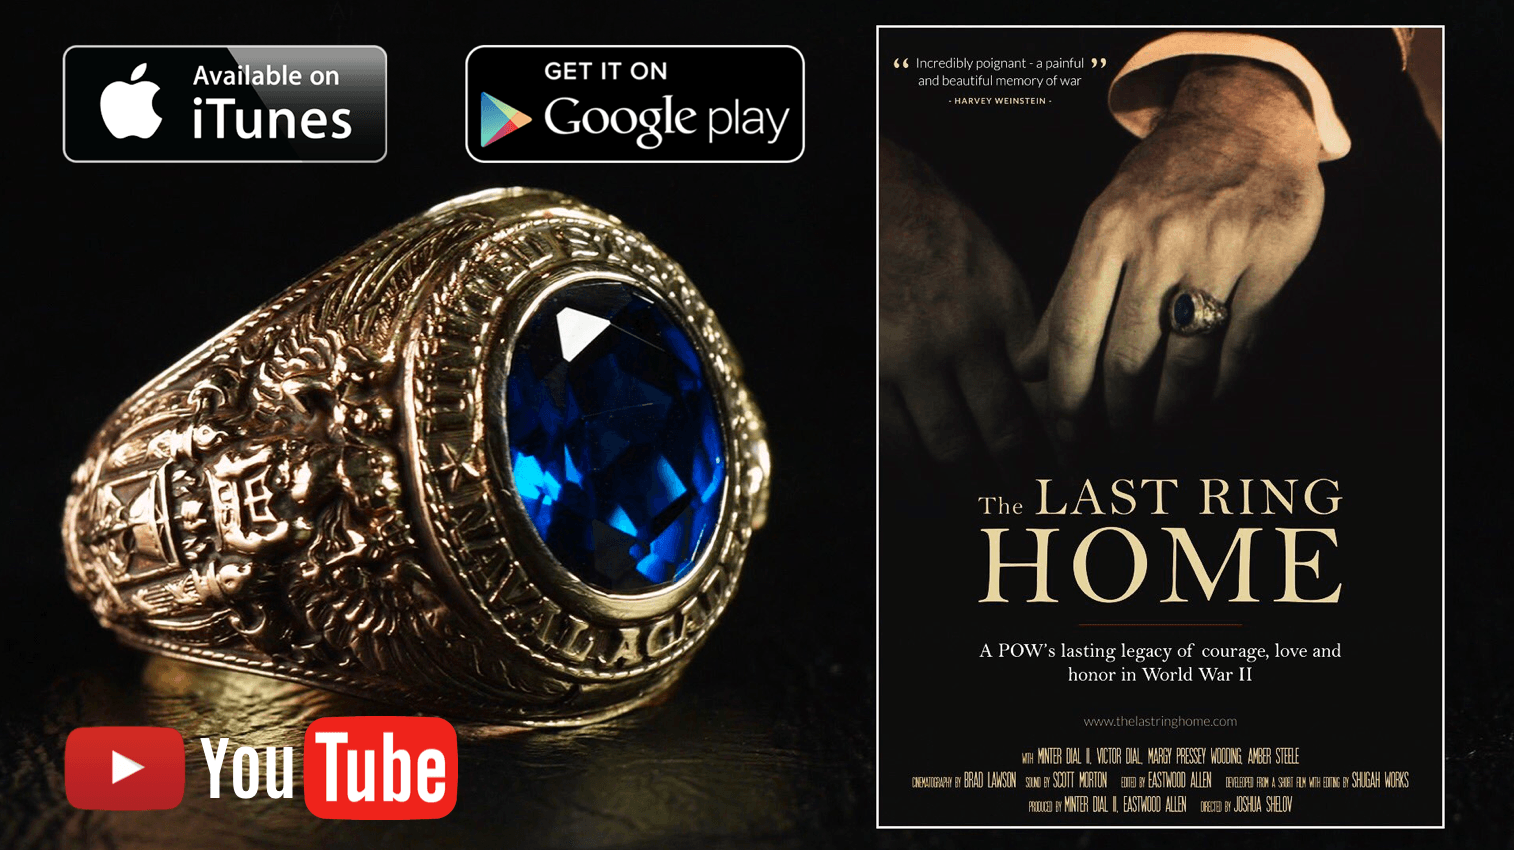 The Last Ring Home (iTunes Youtube & GooglePlay)